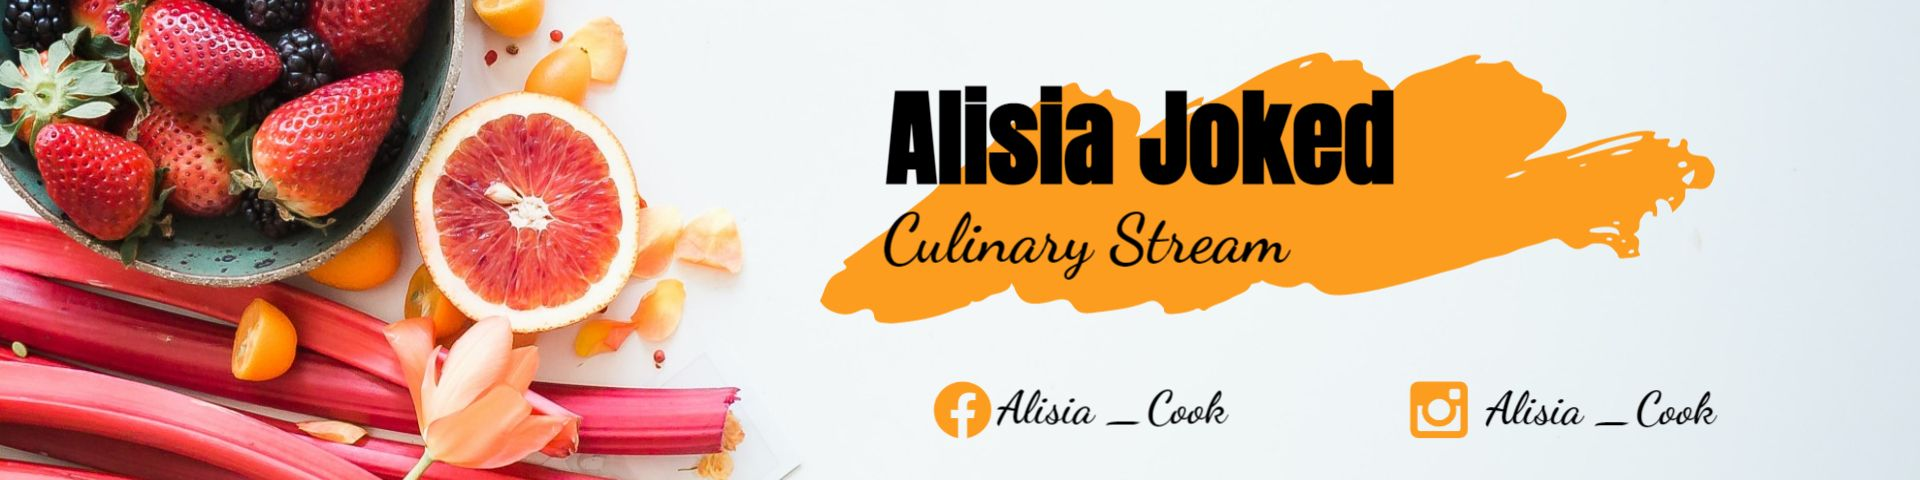 Culinary Stream Twitch Channel Heading Banner